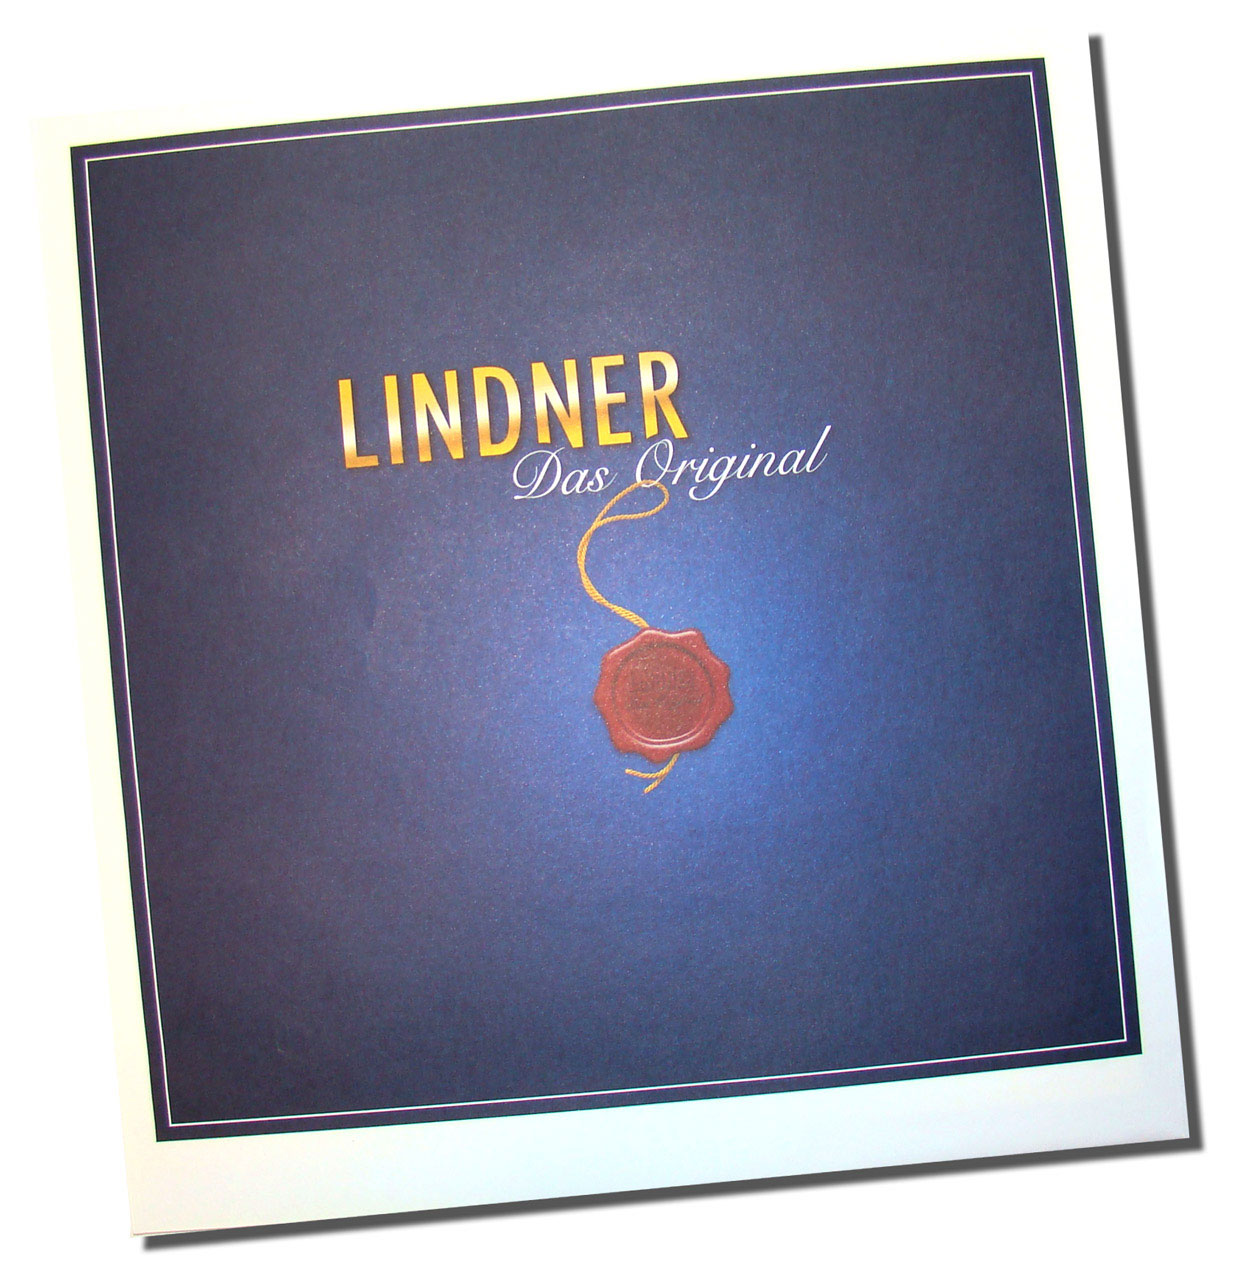 Alderney 2019 Luxury Lindner Hingeless Leaves